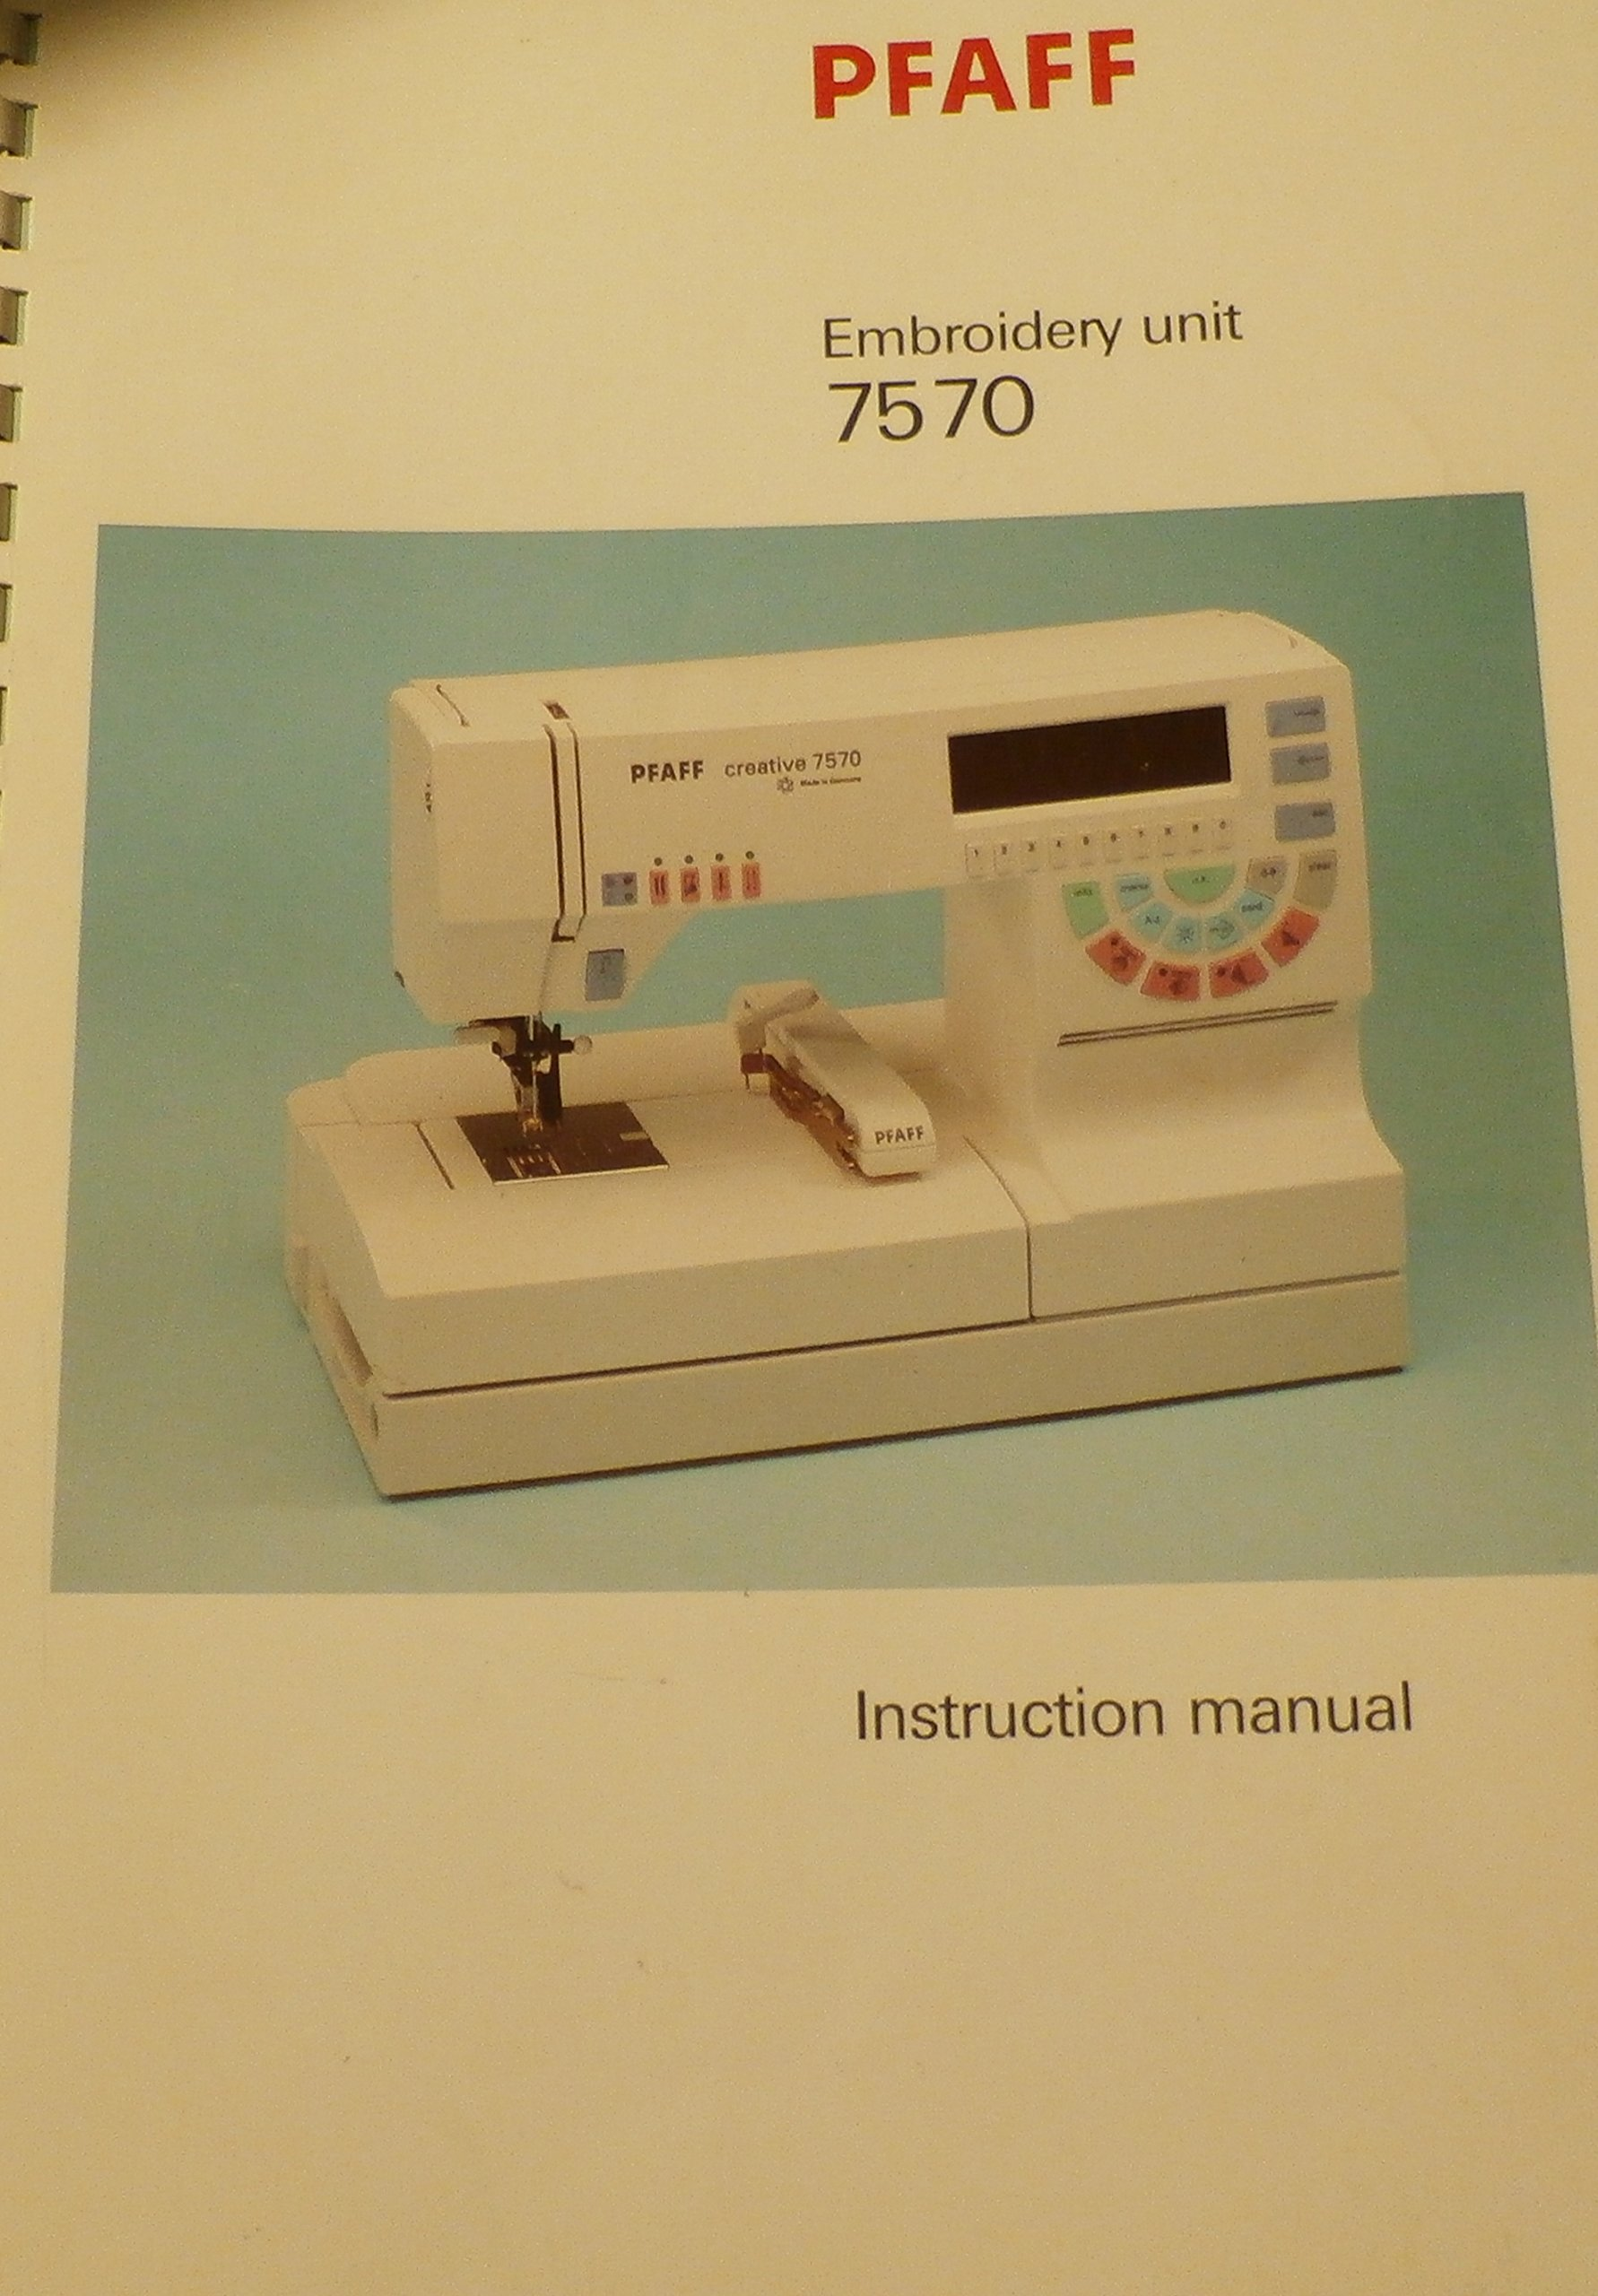 Embroidery Software Pfaff 7570 Free Embroidery Patterns